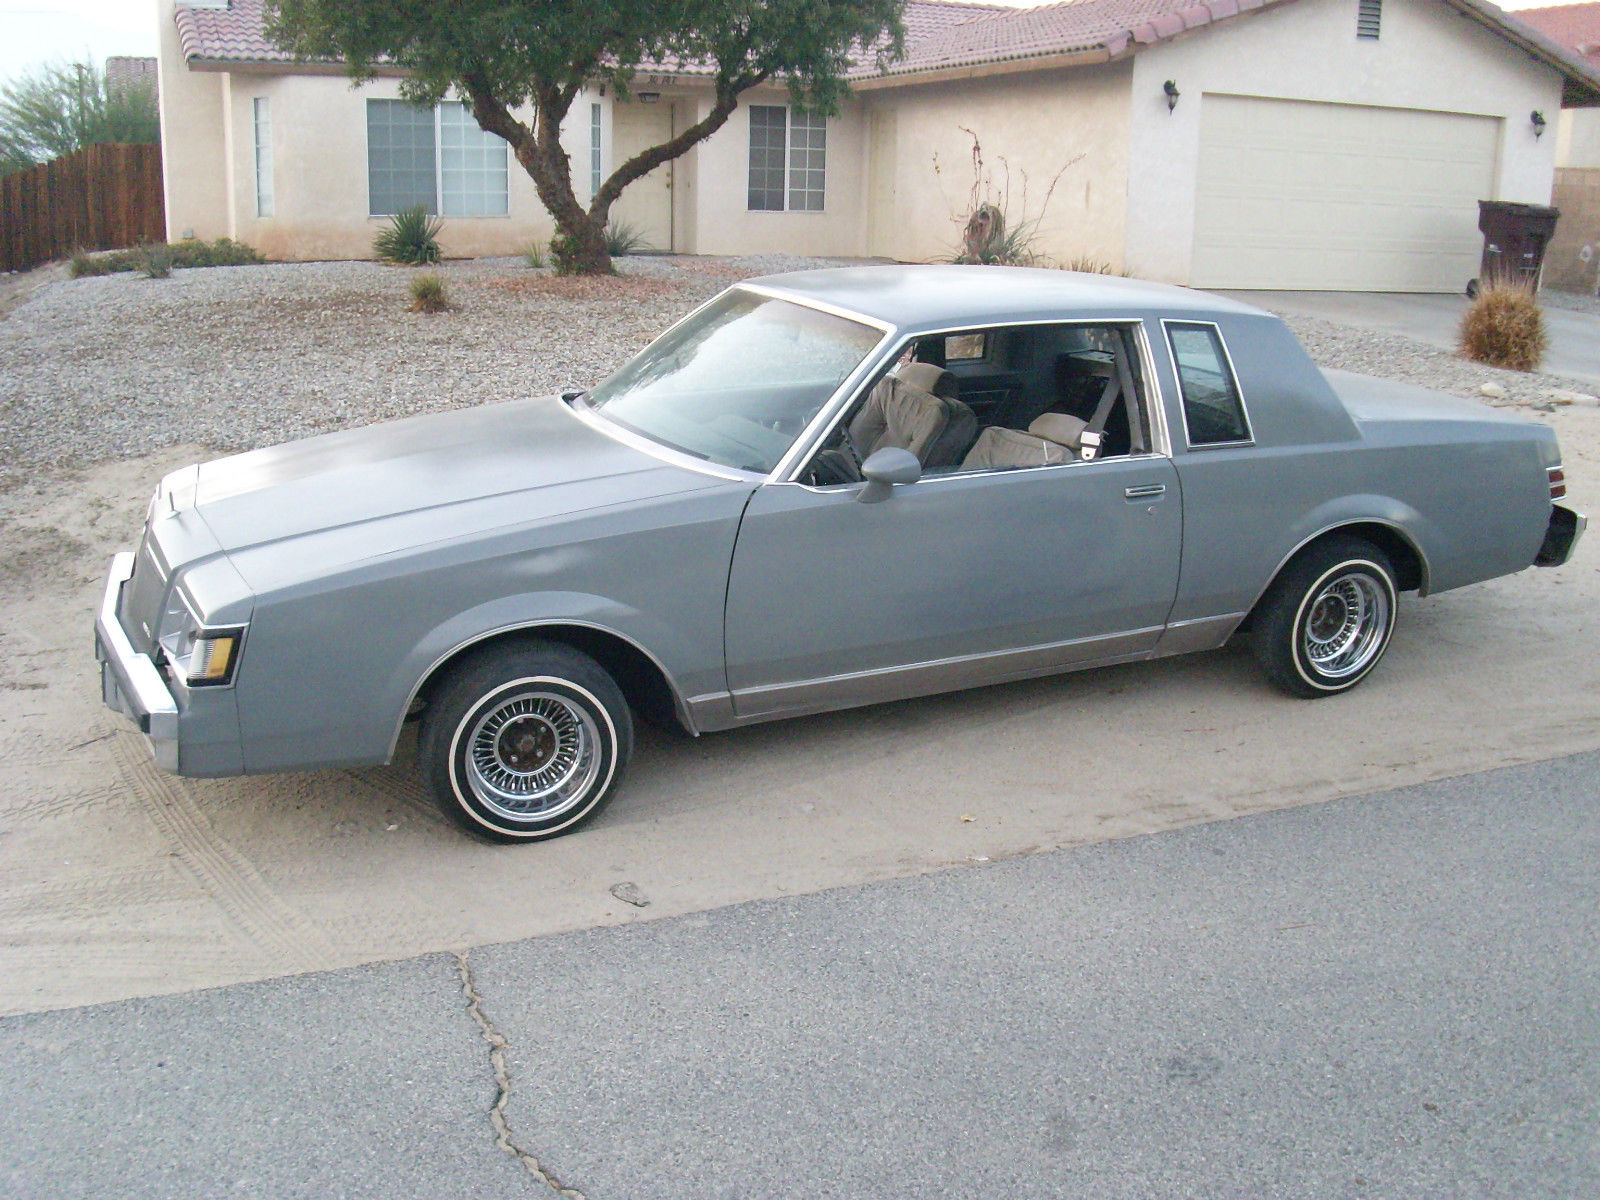 classics coupe a limited regal classic curbside american electra rendevous buick sale img for